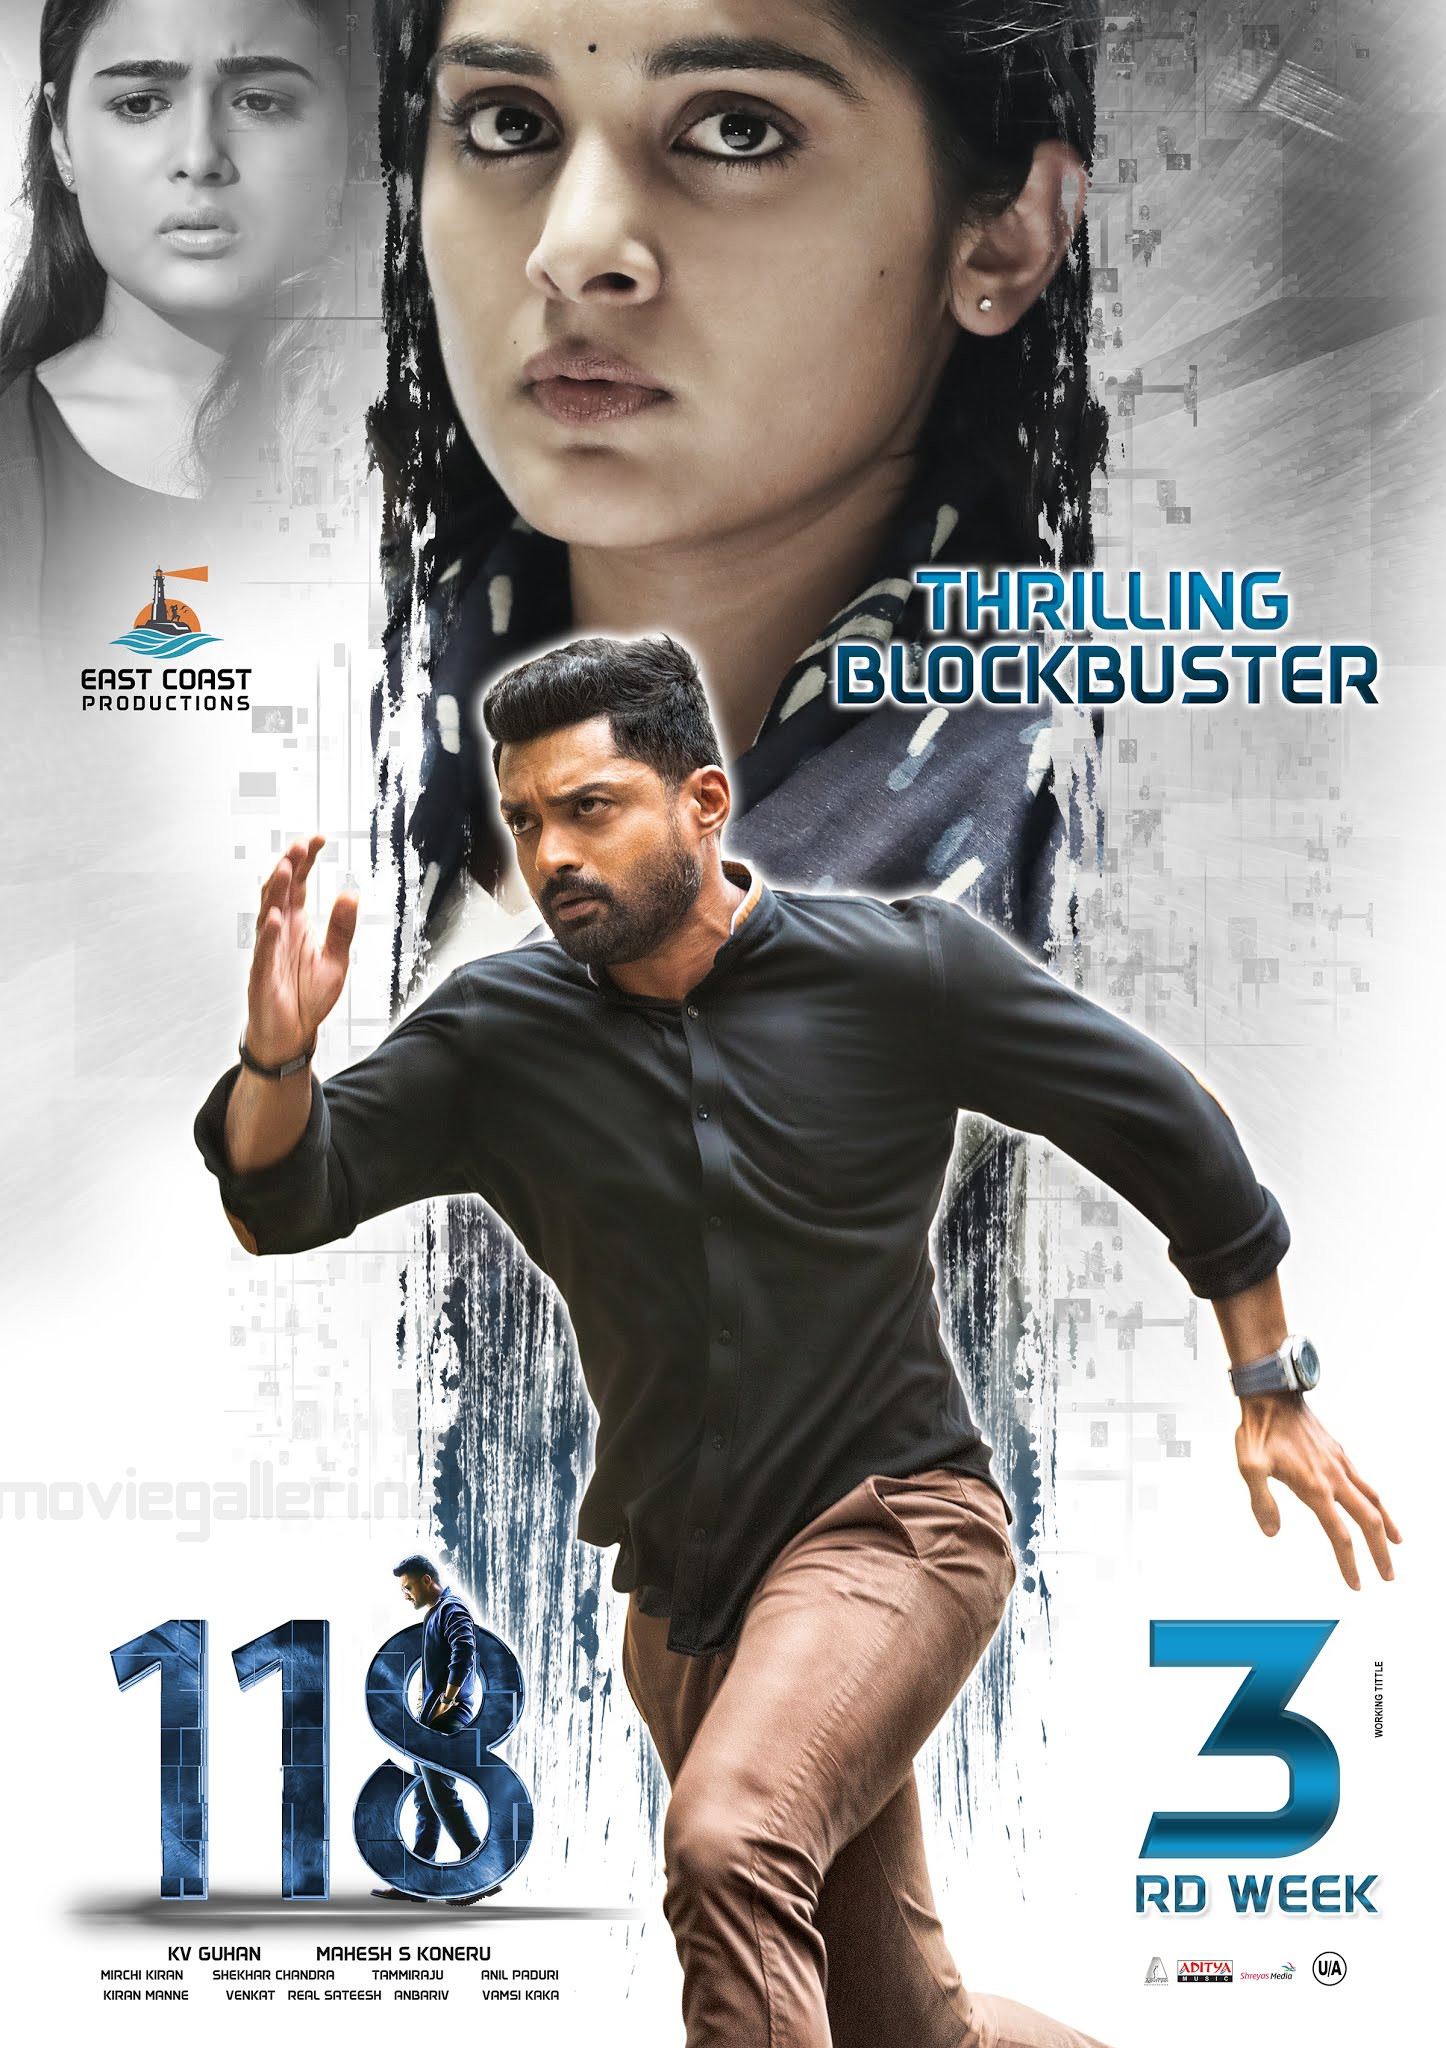 Shalini Pandey, Nivetha Thomas, Kalyan Ram in 118 Movie 3rd Week Posters HD